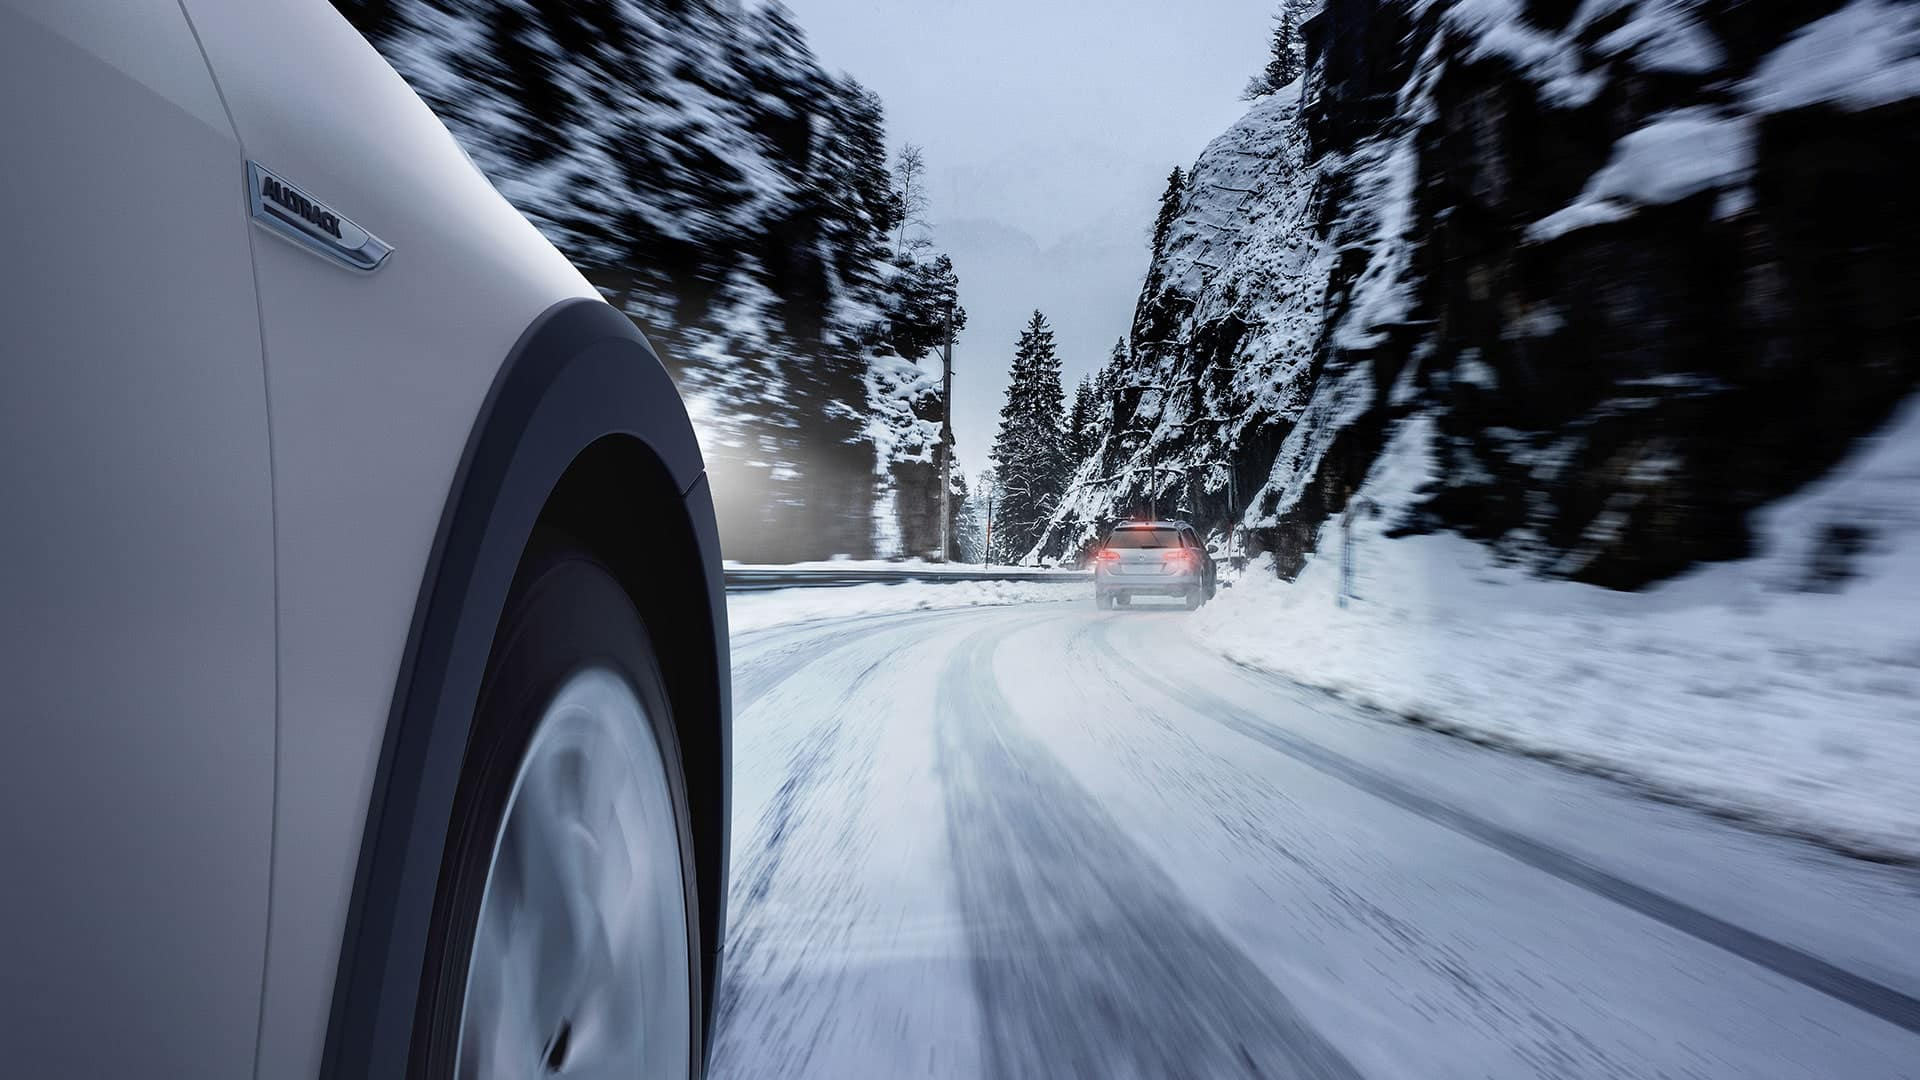 2019 VW Golf Alltrack handling icy roads with ease